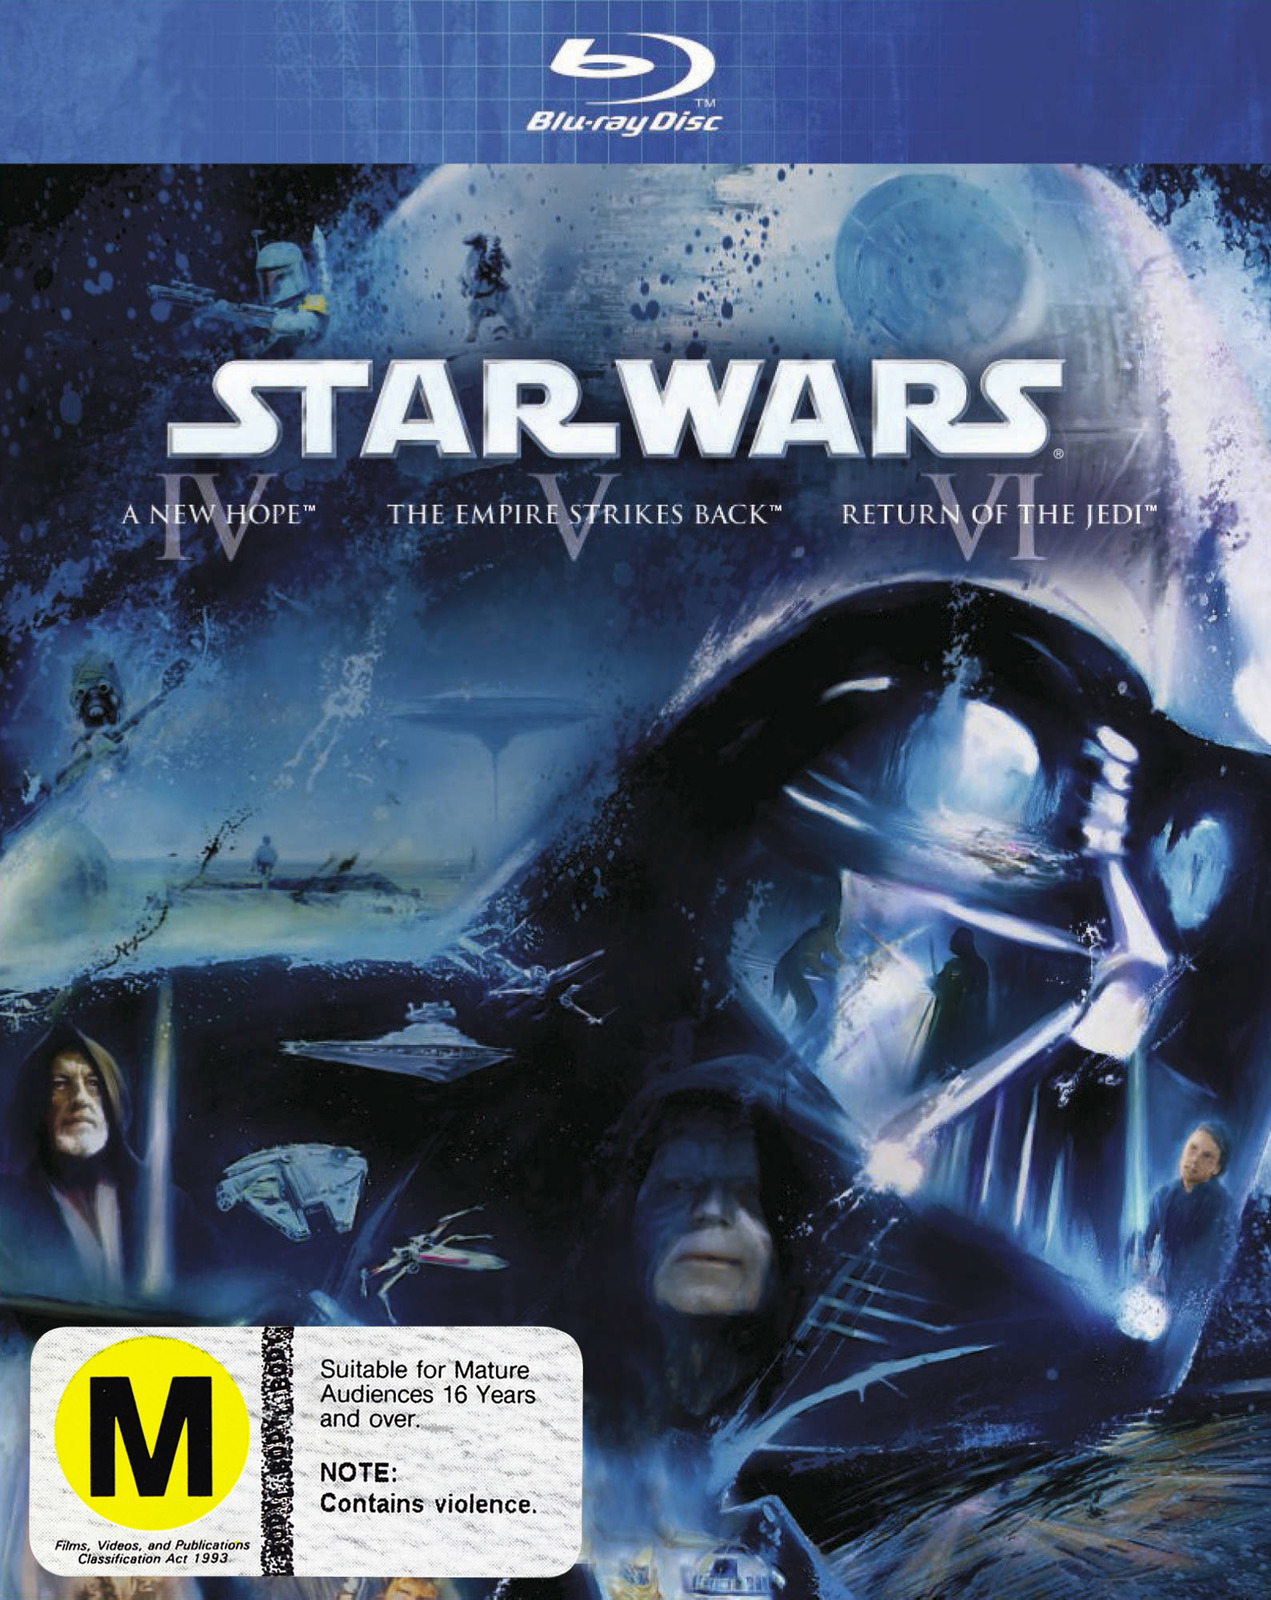 Star Wars IV, V, VI (Original Trilogy) on Blu-ray image